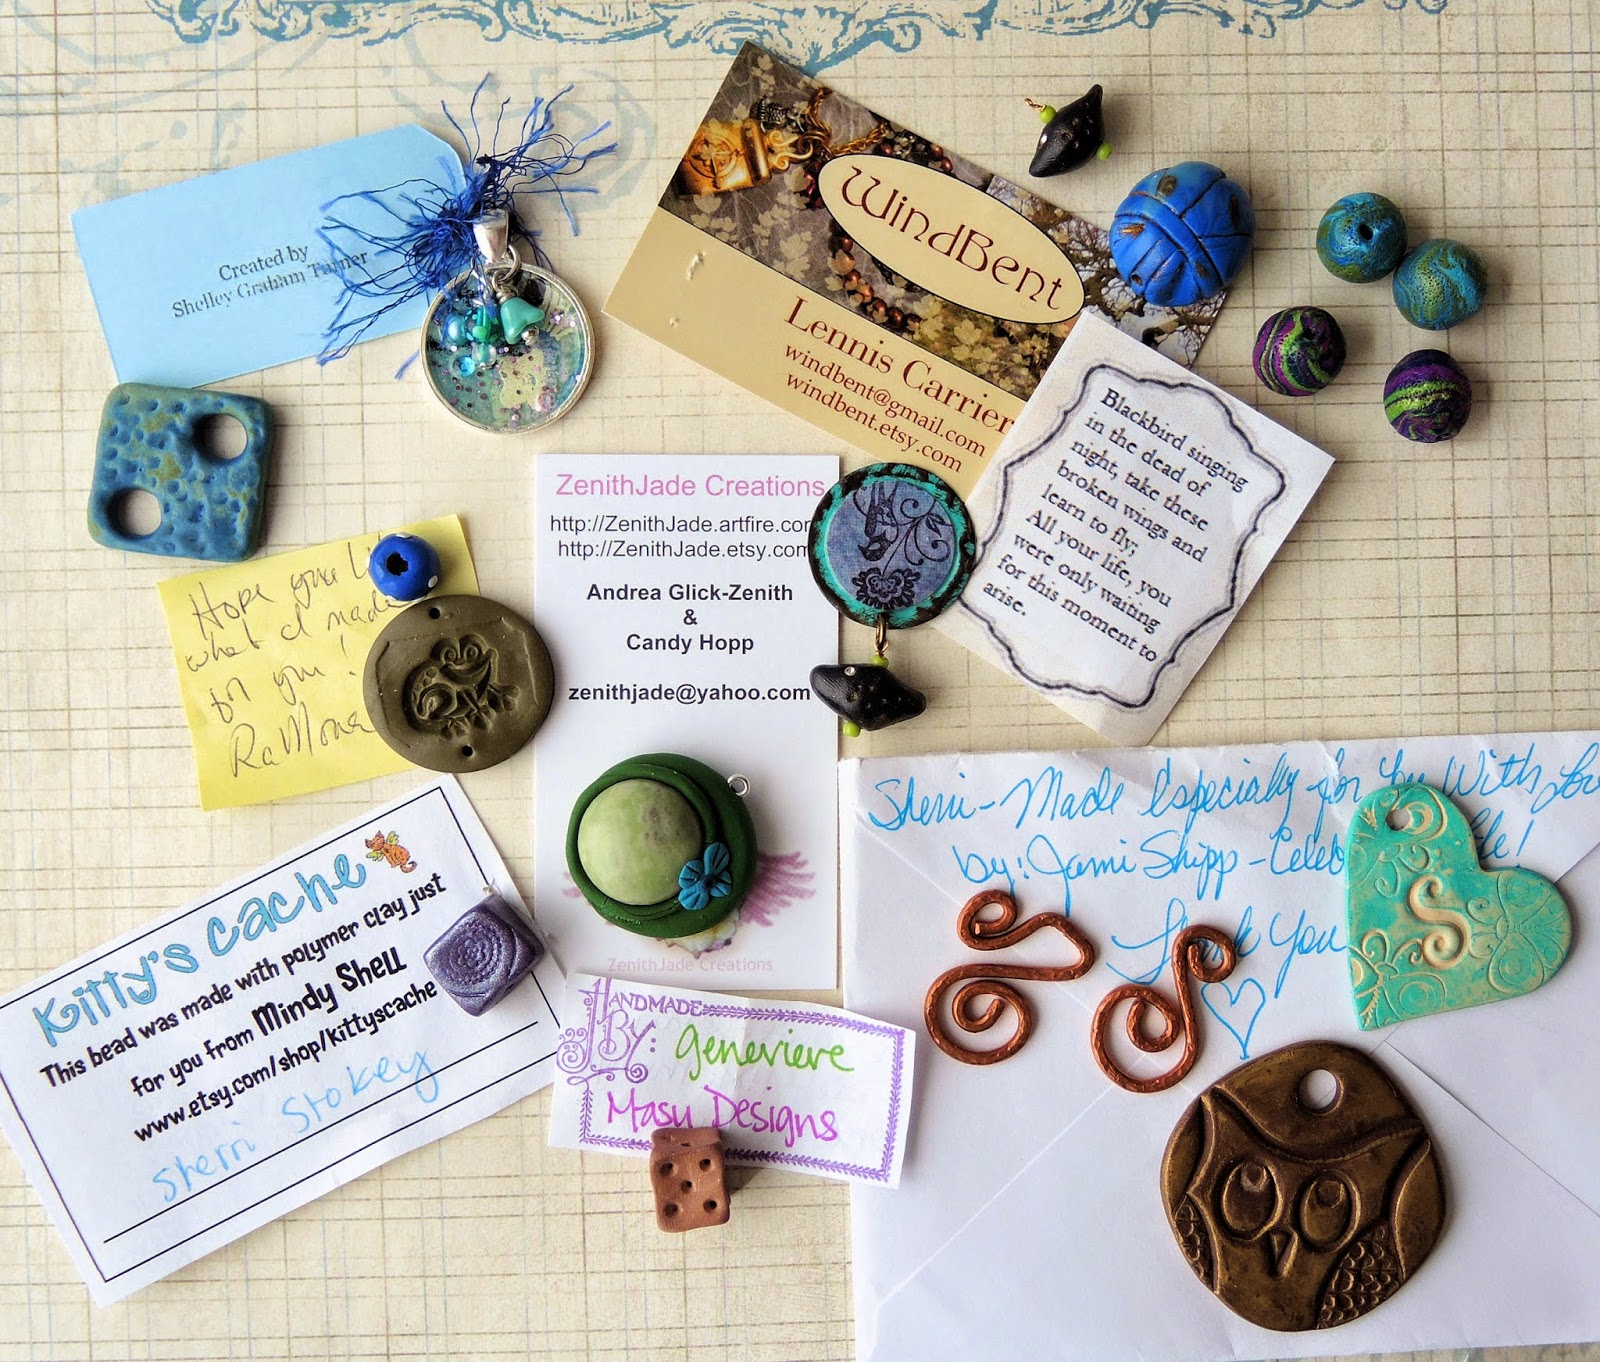 Artists' charms made of polymer clay and resin.